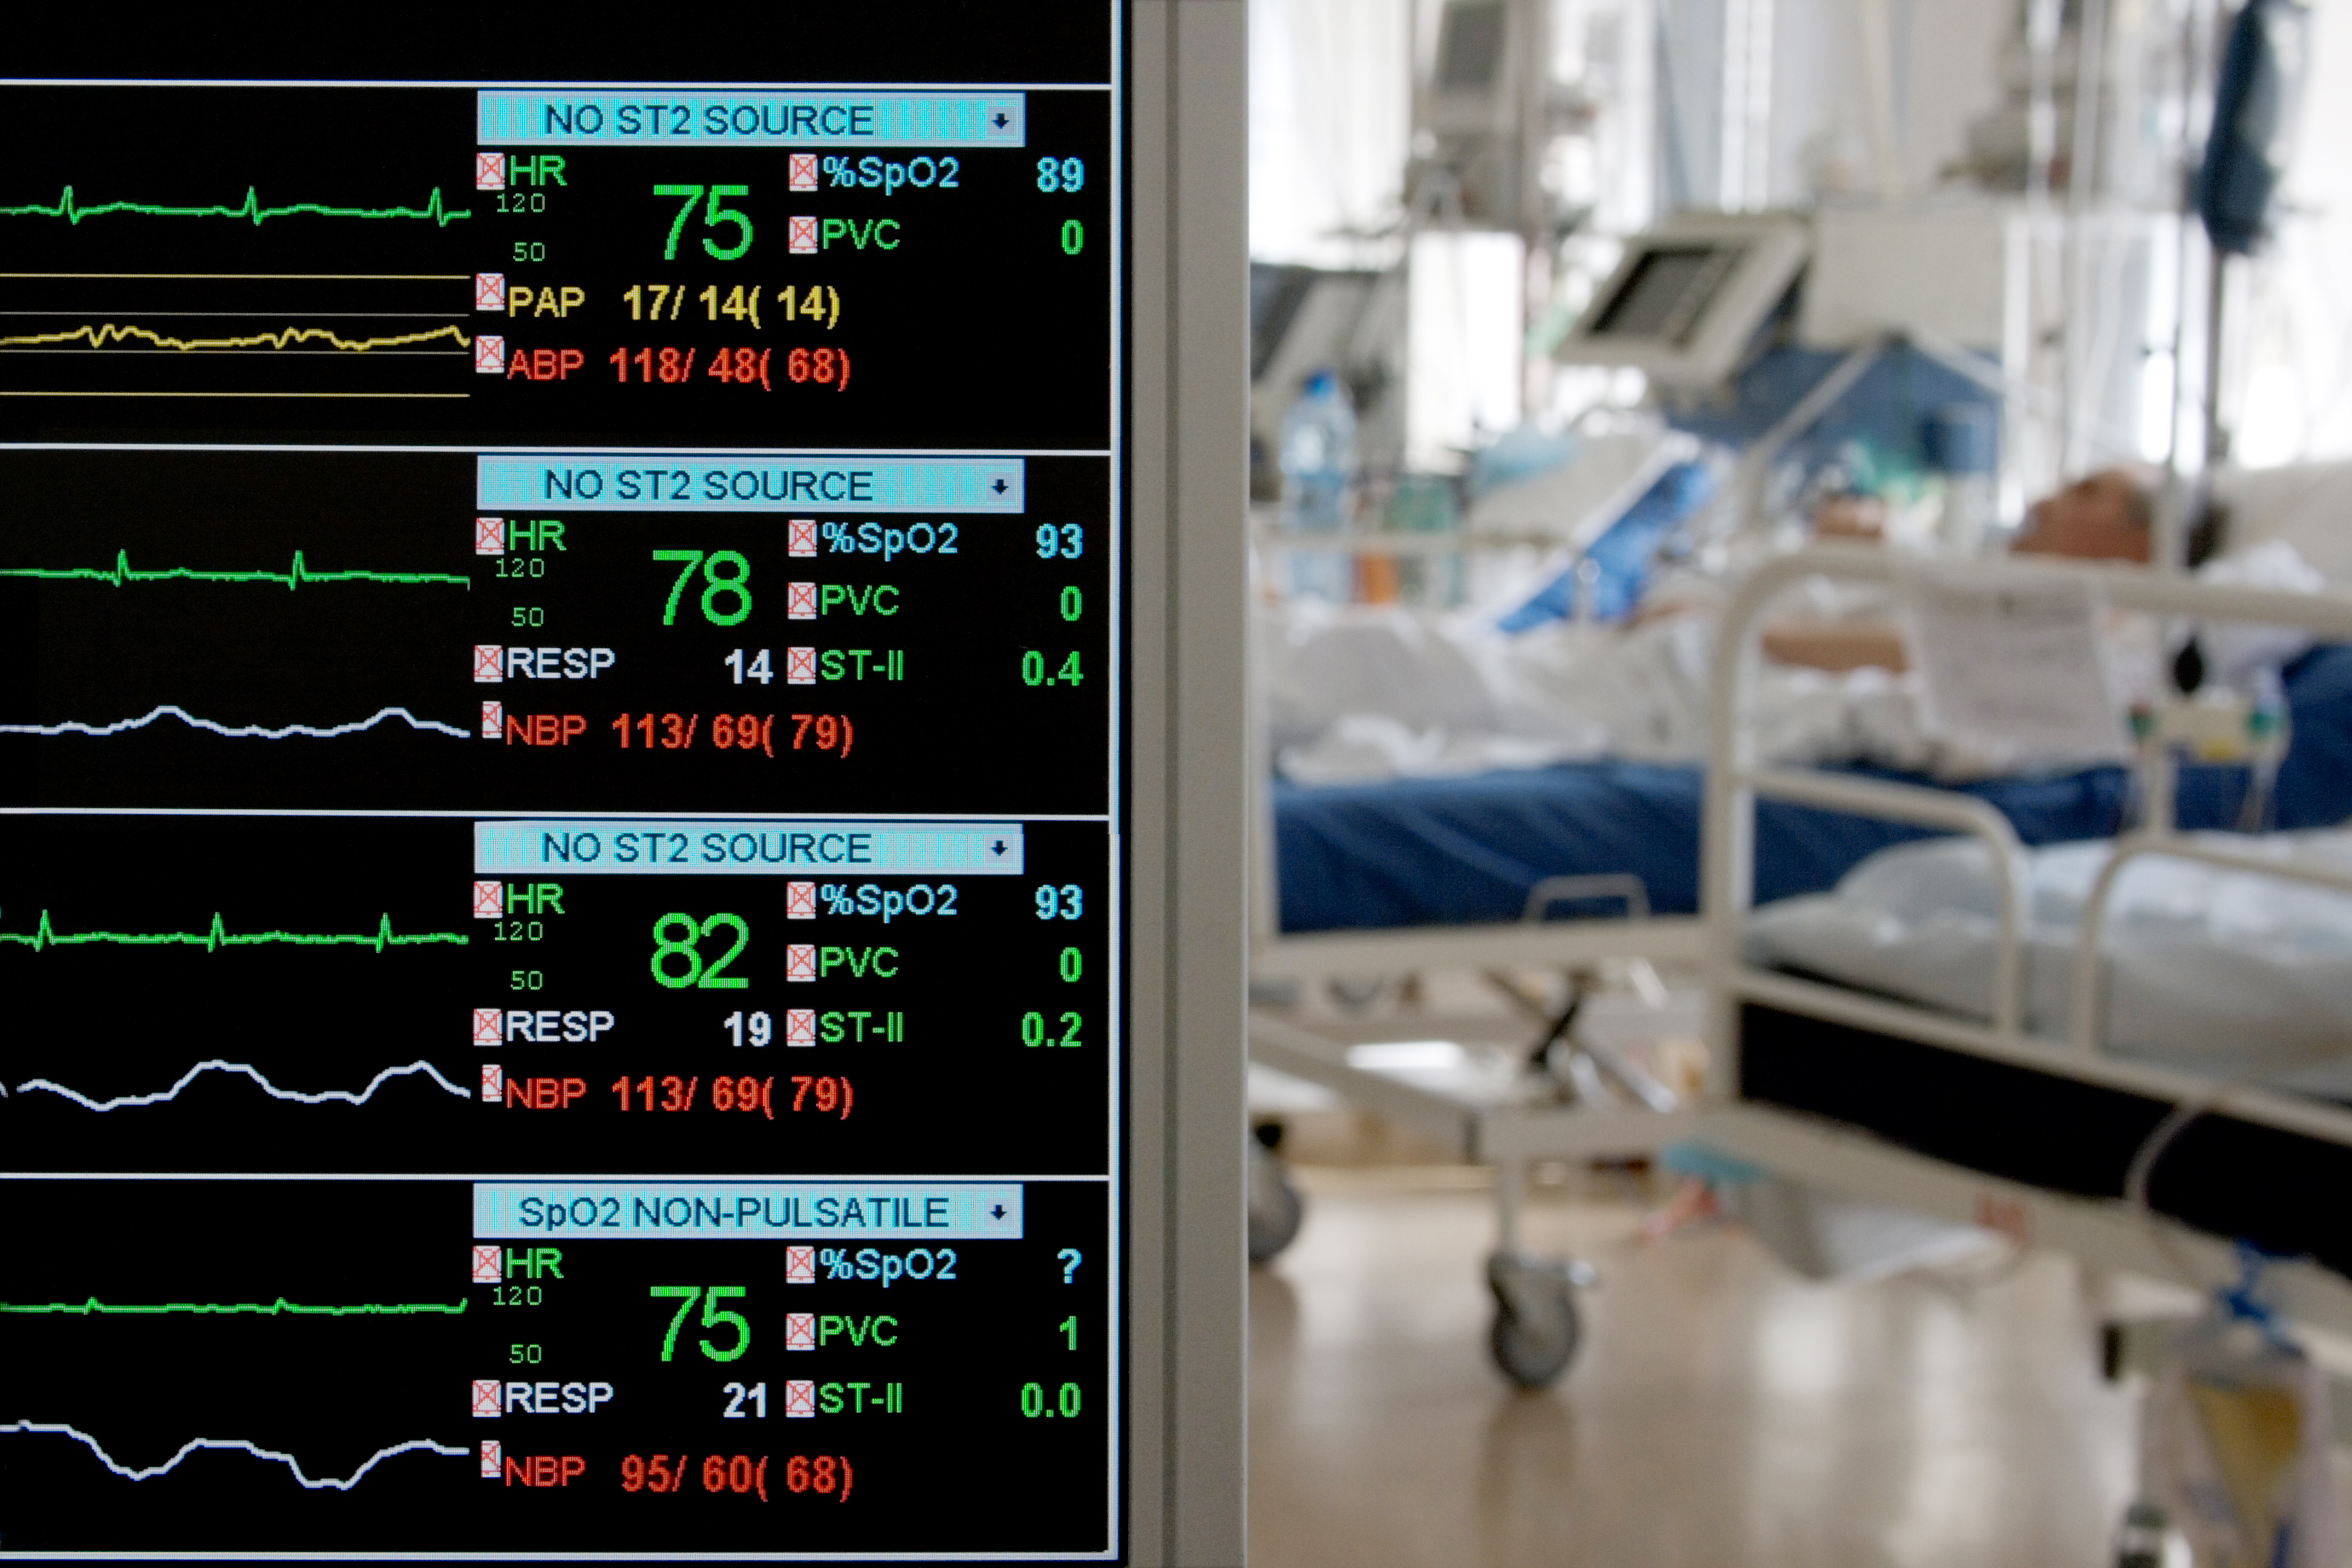 monitoring in ICU with patients